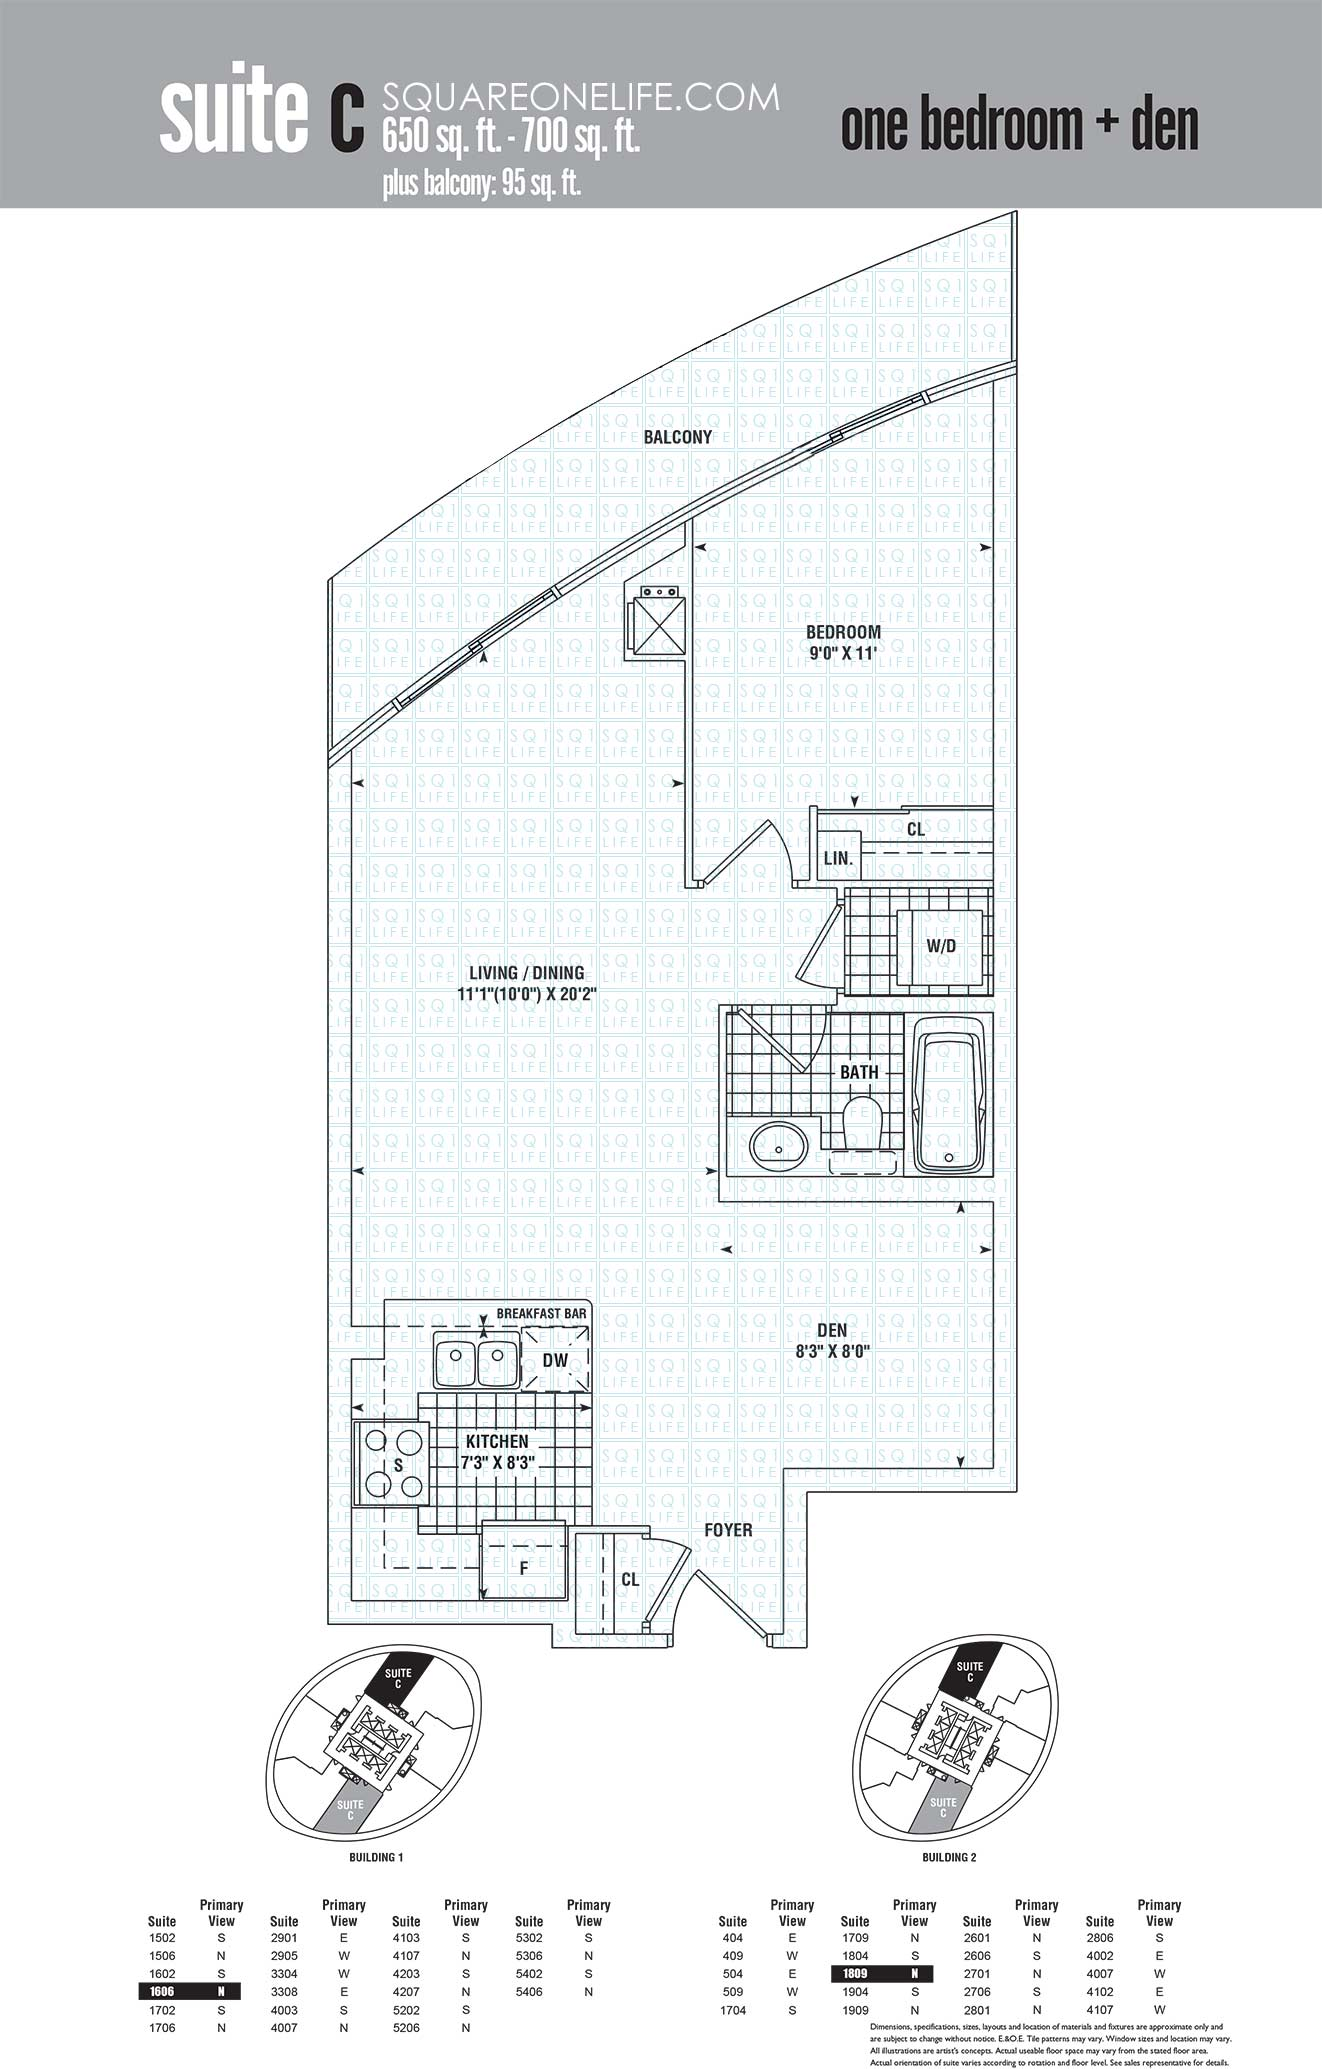 50-Absolute-60-Absolute-Condos-Floorplan-Suite-C-1-Bed-1-Den-1-Bath marilyn monroe condos Marilyn Monroe Condos 50 Absolute 60 Absolute Condos Floorplan Suite C 1 Bed 1 Den 1 Bath